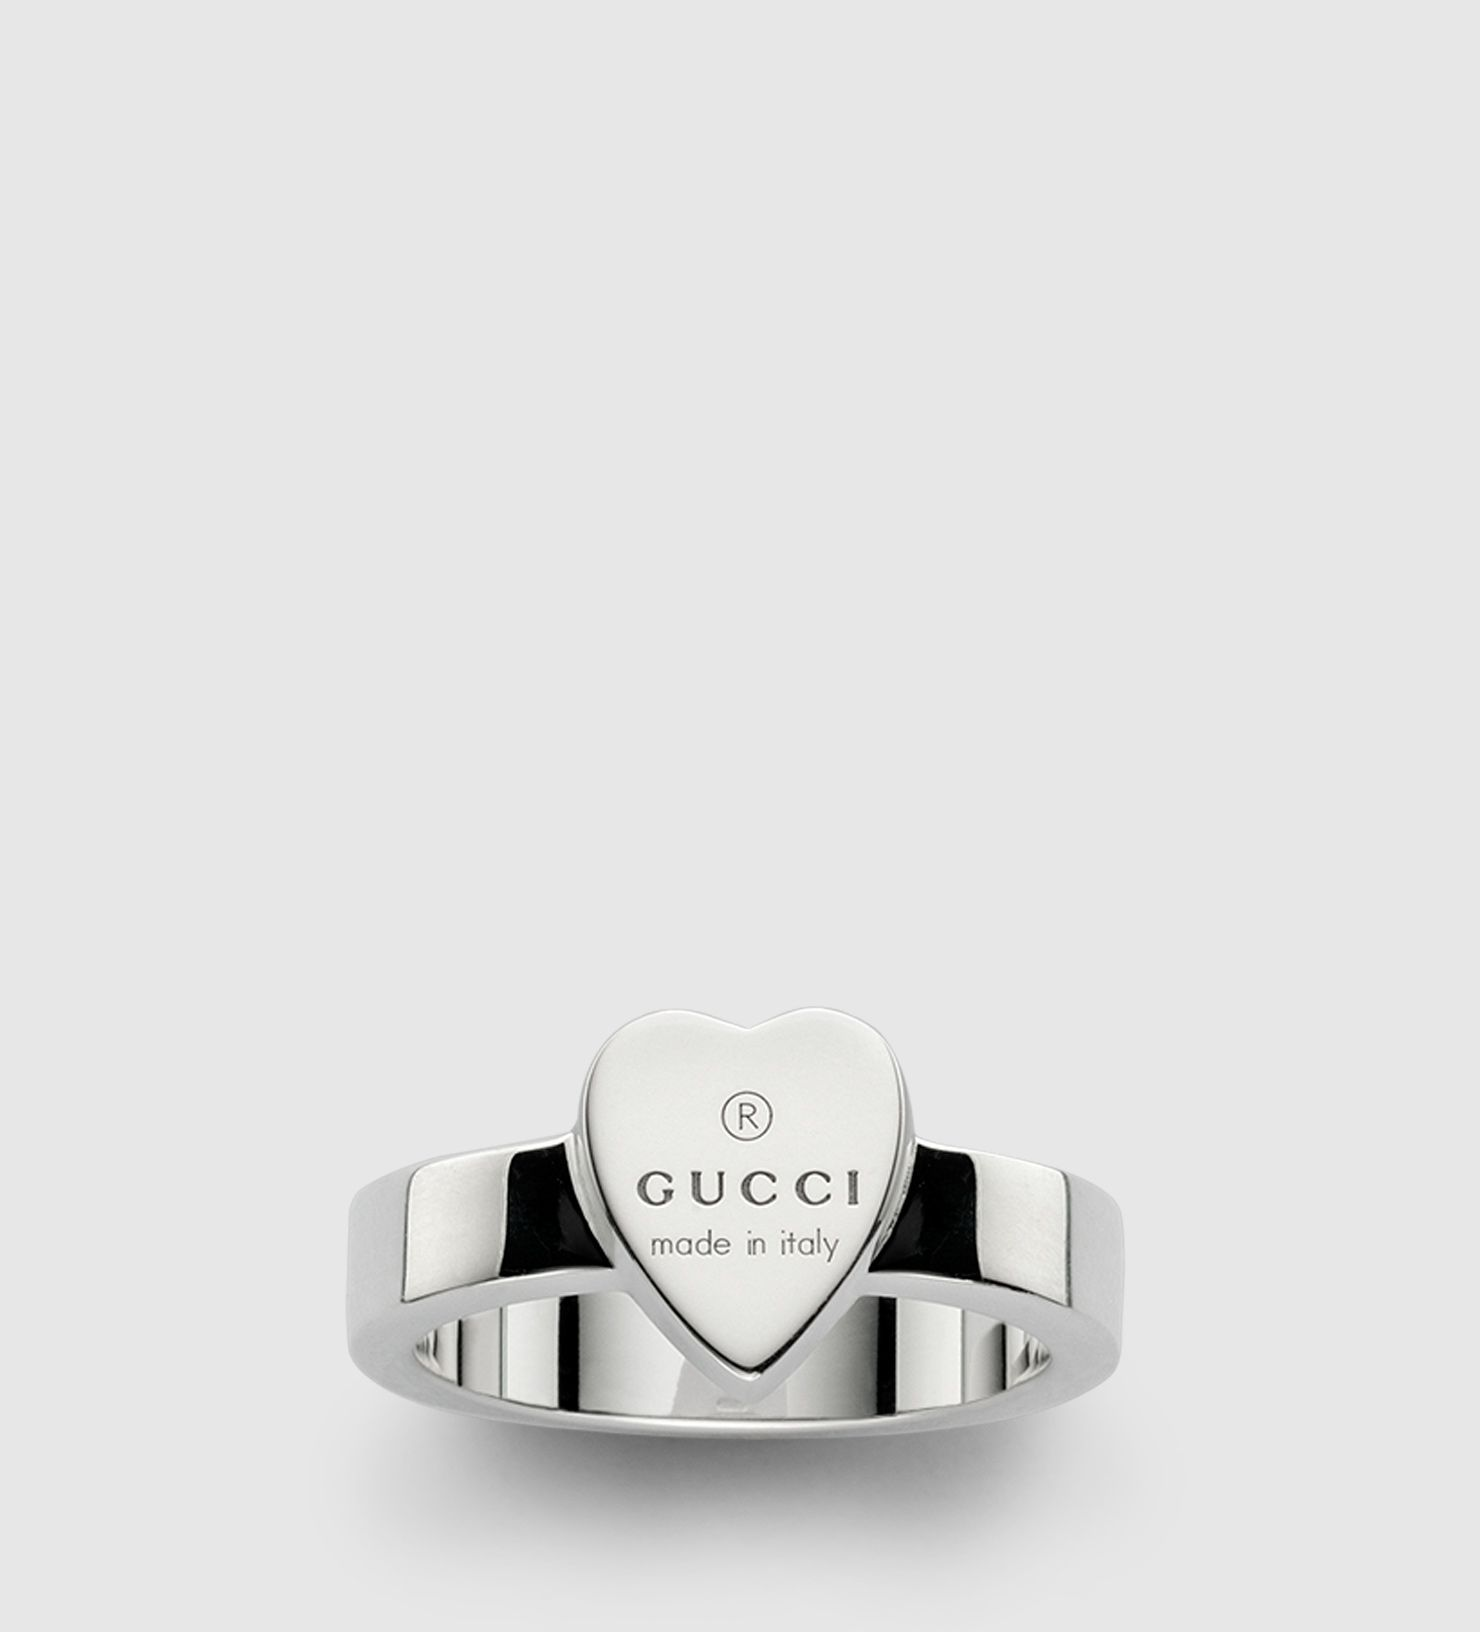 Spectacular heart ring with gucci trademark engraving